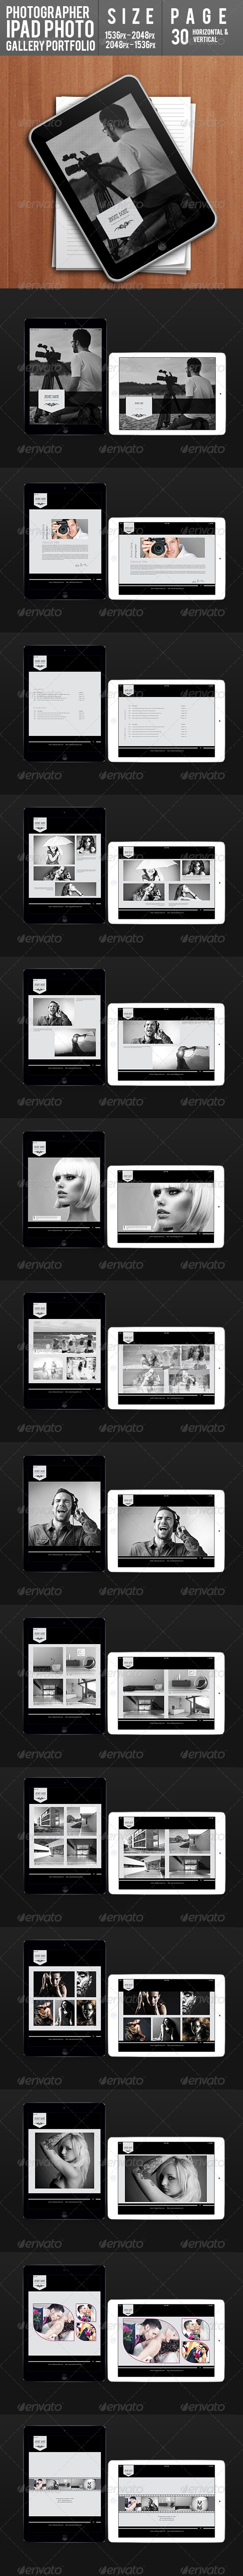 GraphicRiver Photographer Ipad Photo Gallery Portfolio 7633934